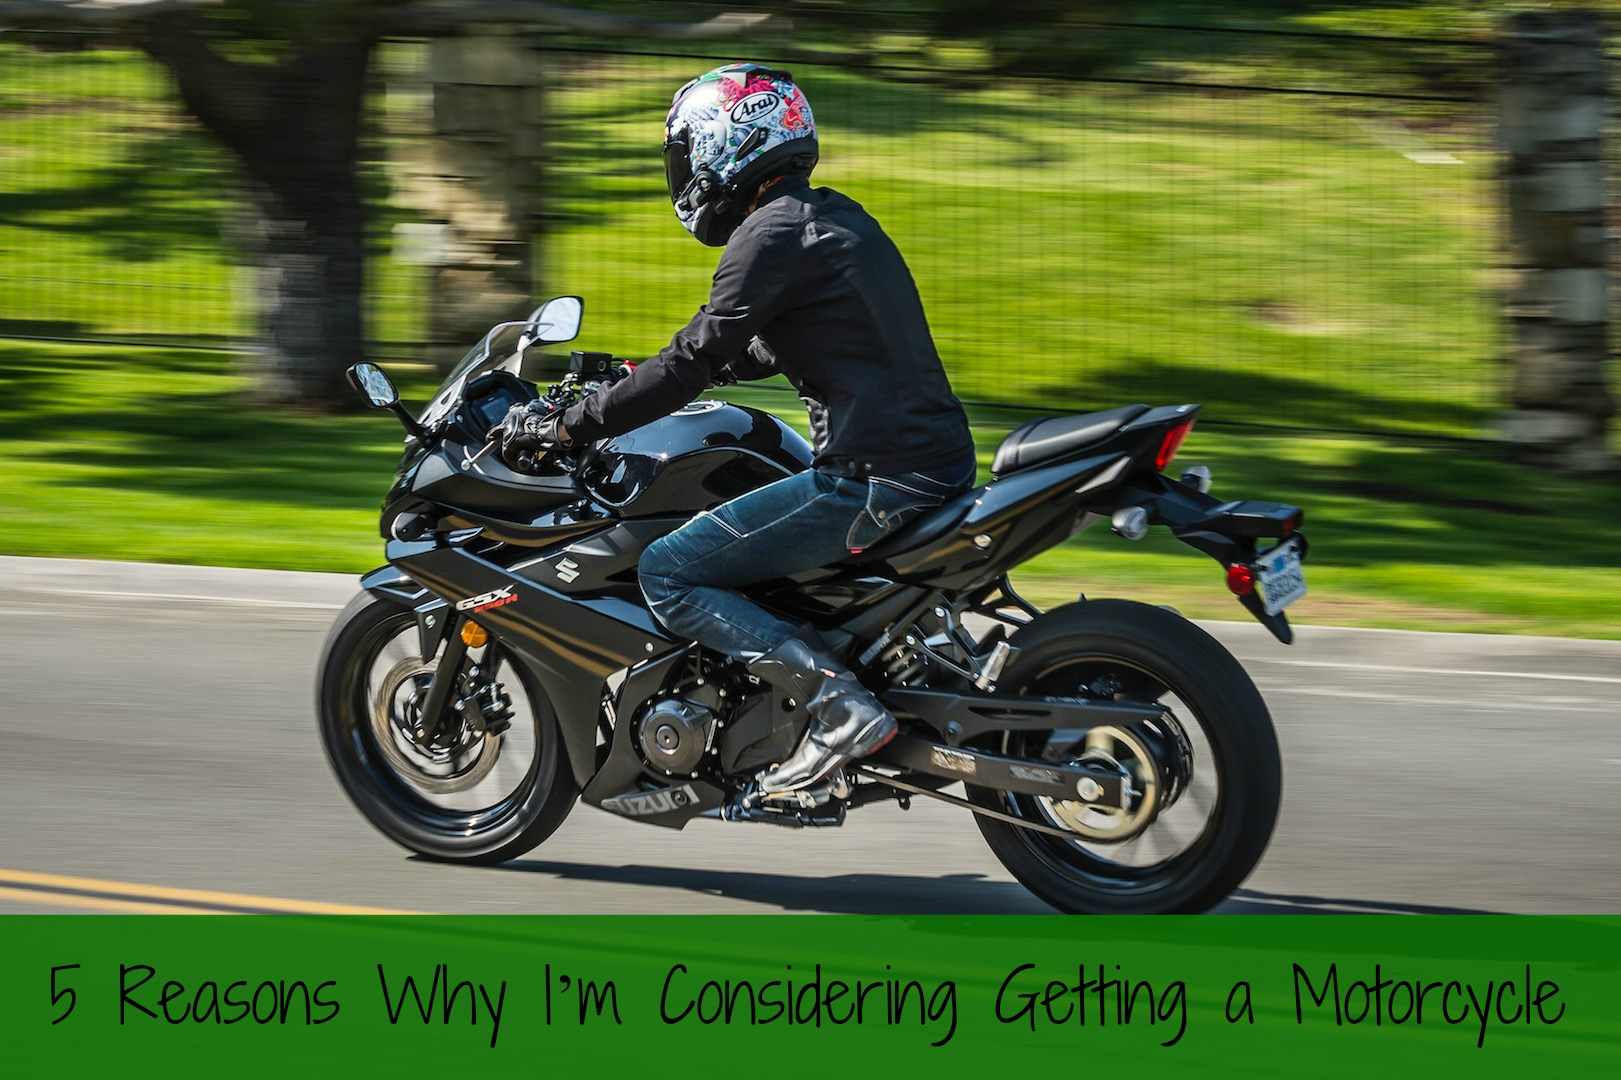 5 Reasons Why I'm Considering Getting a Motorcycle